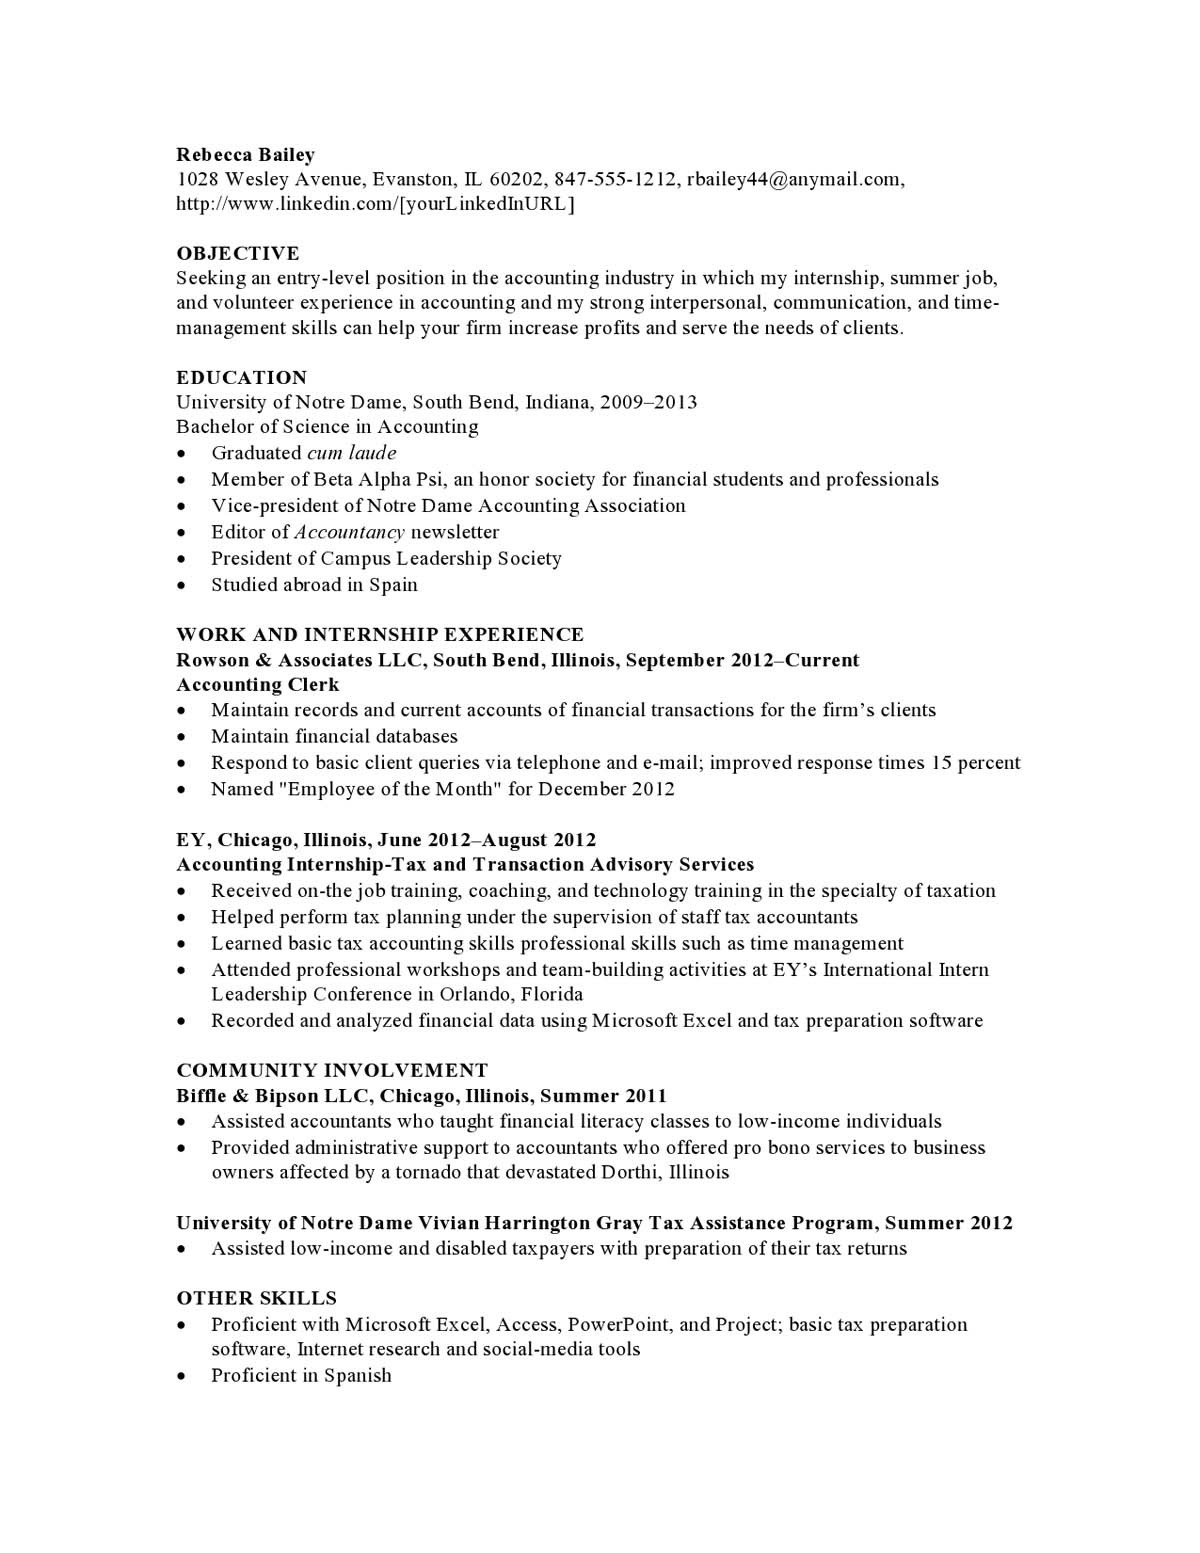 resume samples templates examples vault for jobs with experience crescoact19 nursing Resume Resume Examples For Jobs With Experience